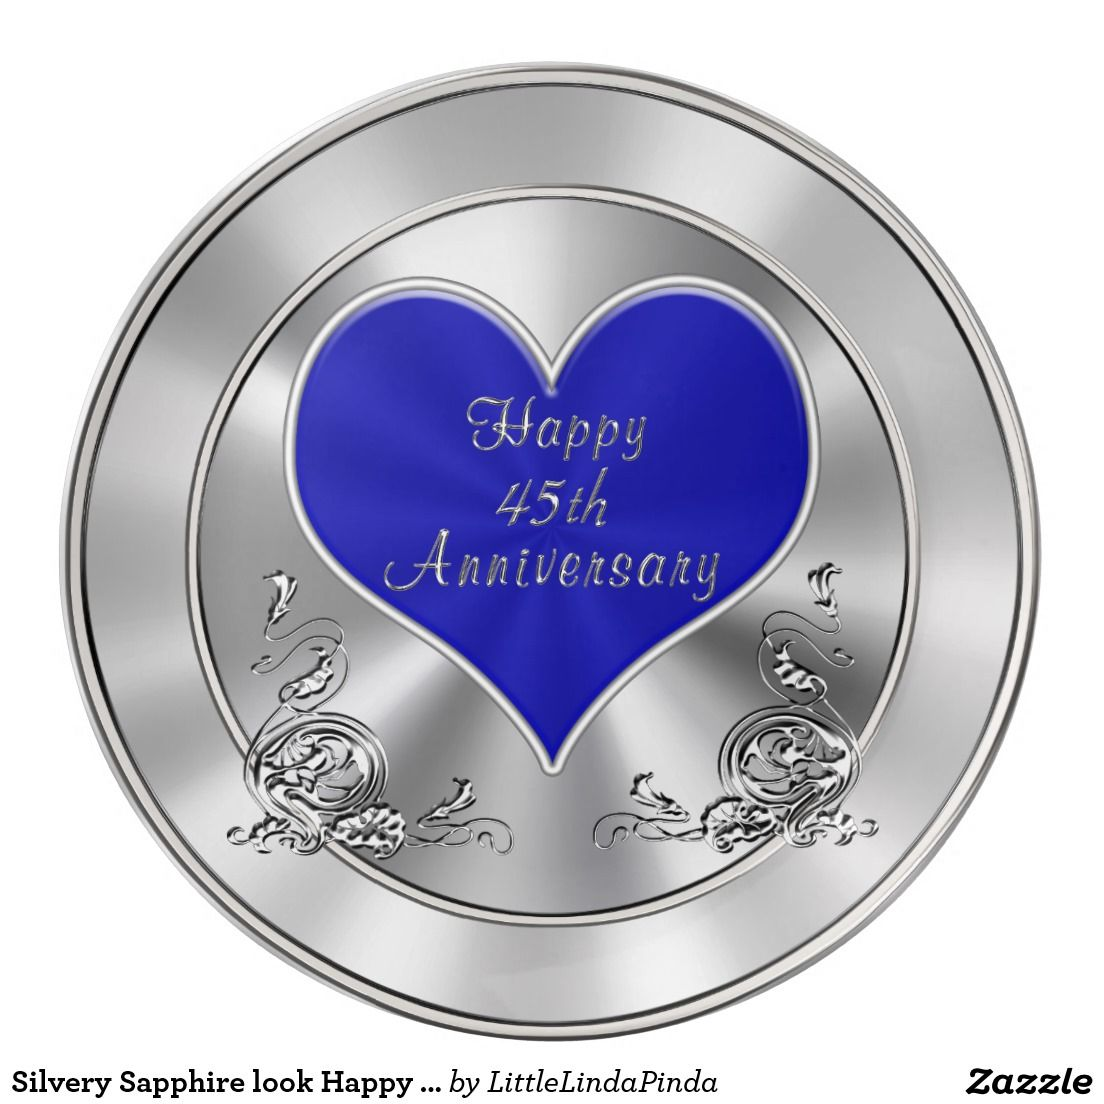 Silvery Sapphire look Happy 45th Anniversary Gifts Dinner